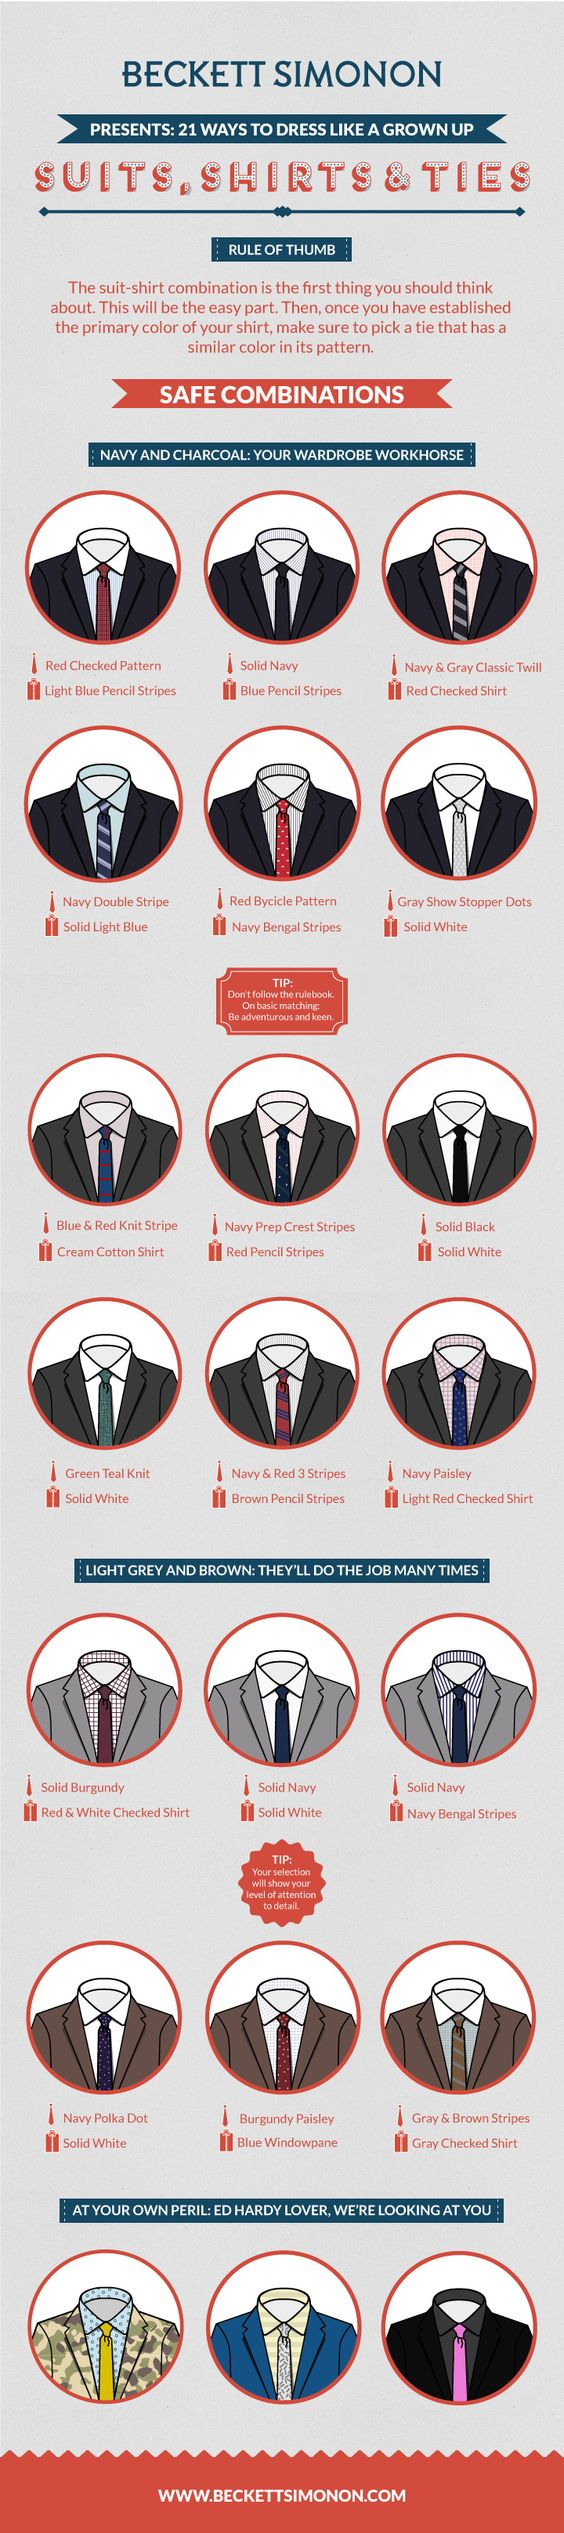 How to match suits shirts and ties like a pro suits for How to match shirt and tie